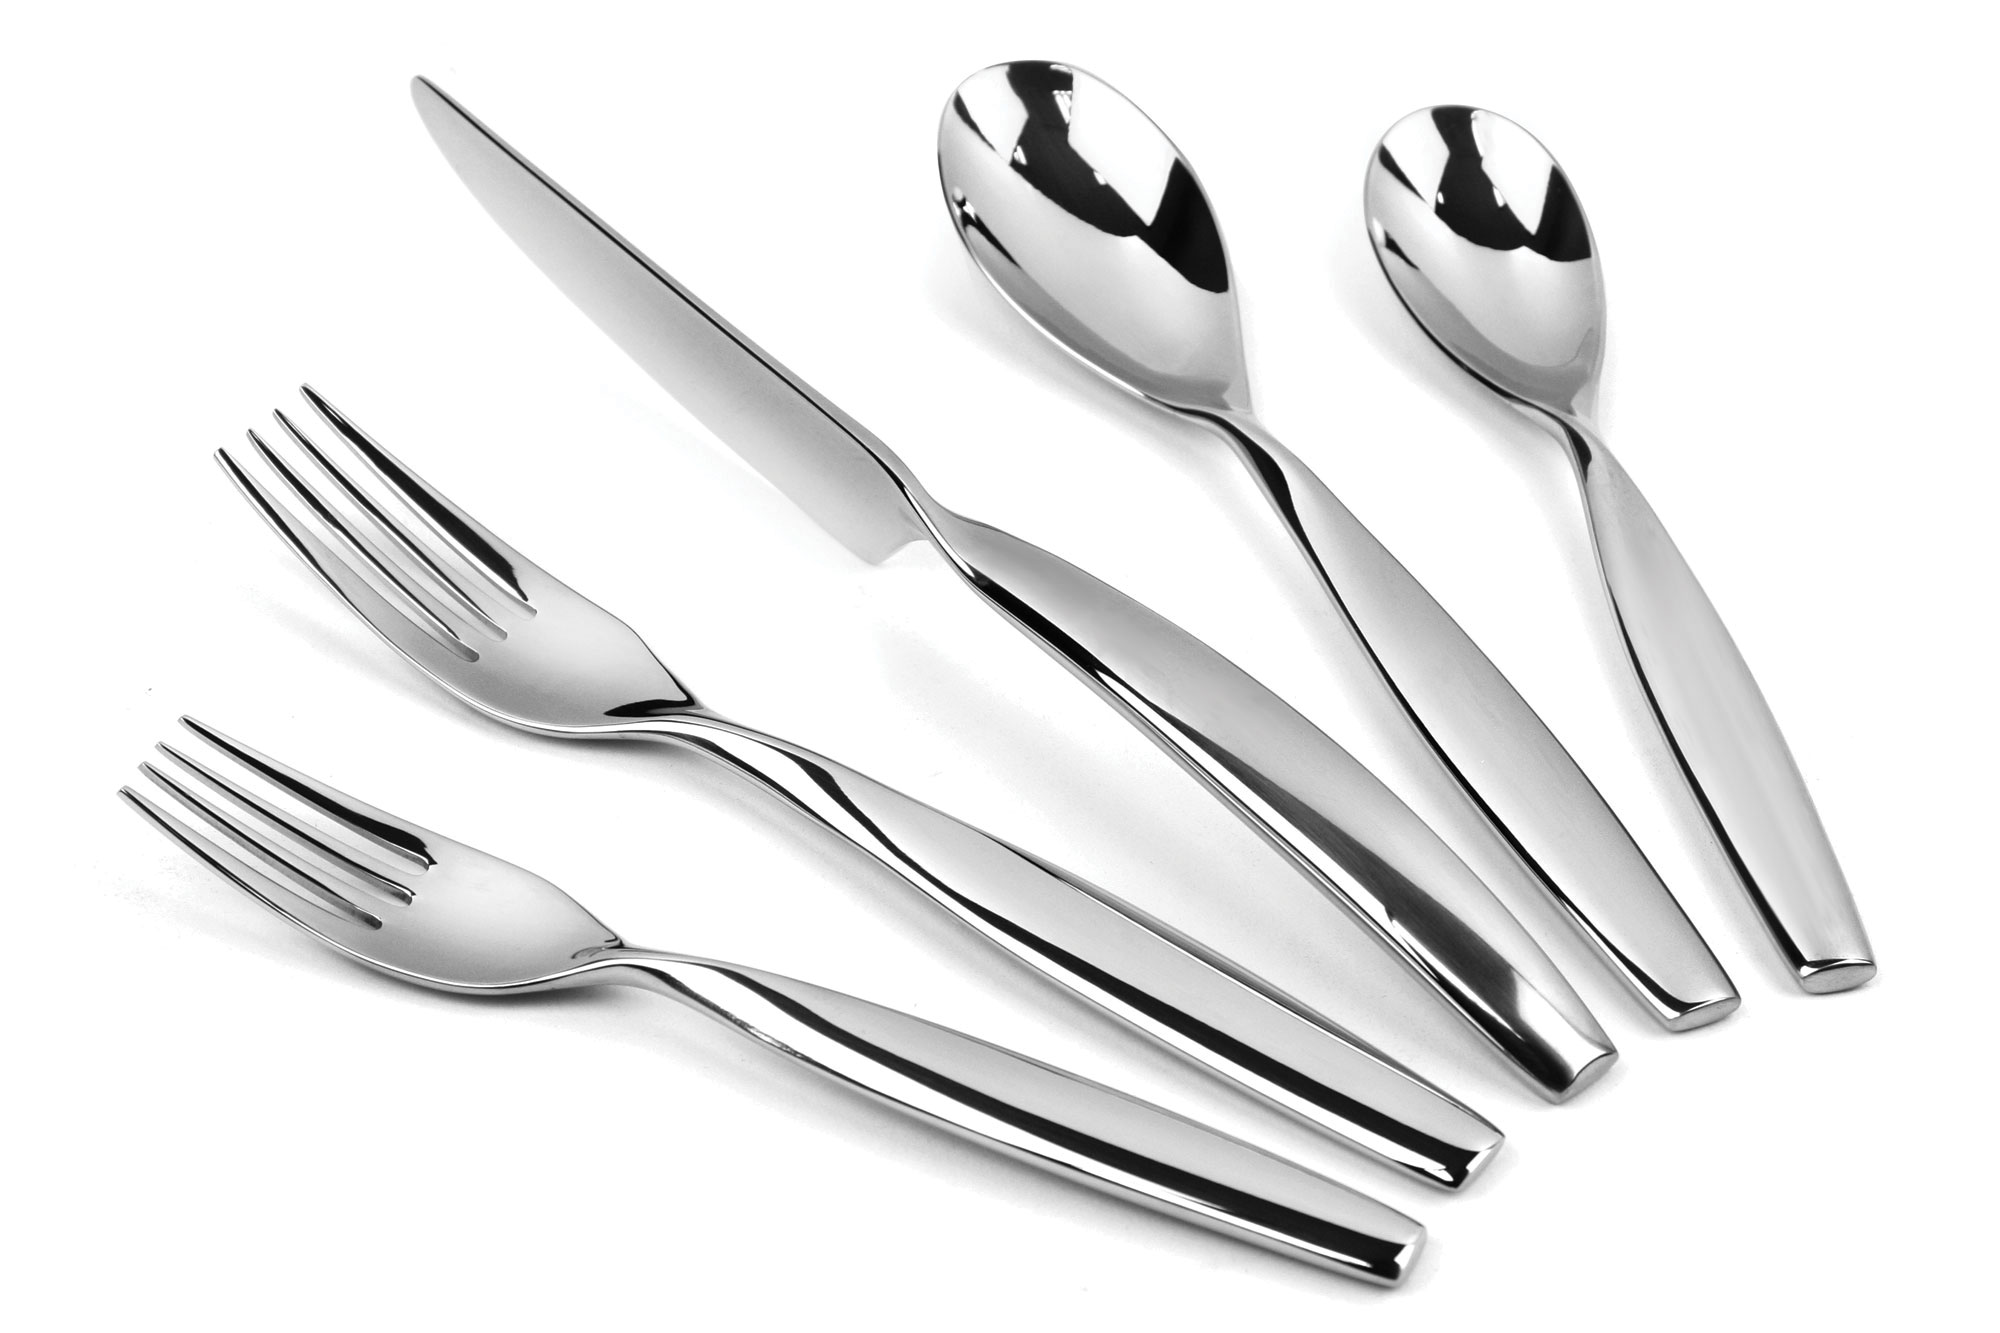 20-piece  sc 1 st  Cutlery and More & Yamazaki Swivel Stainless Steel Flatware Set 40-piece | Cutlery and ...